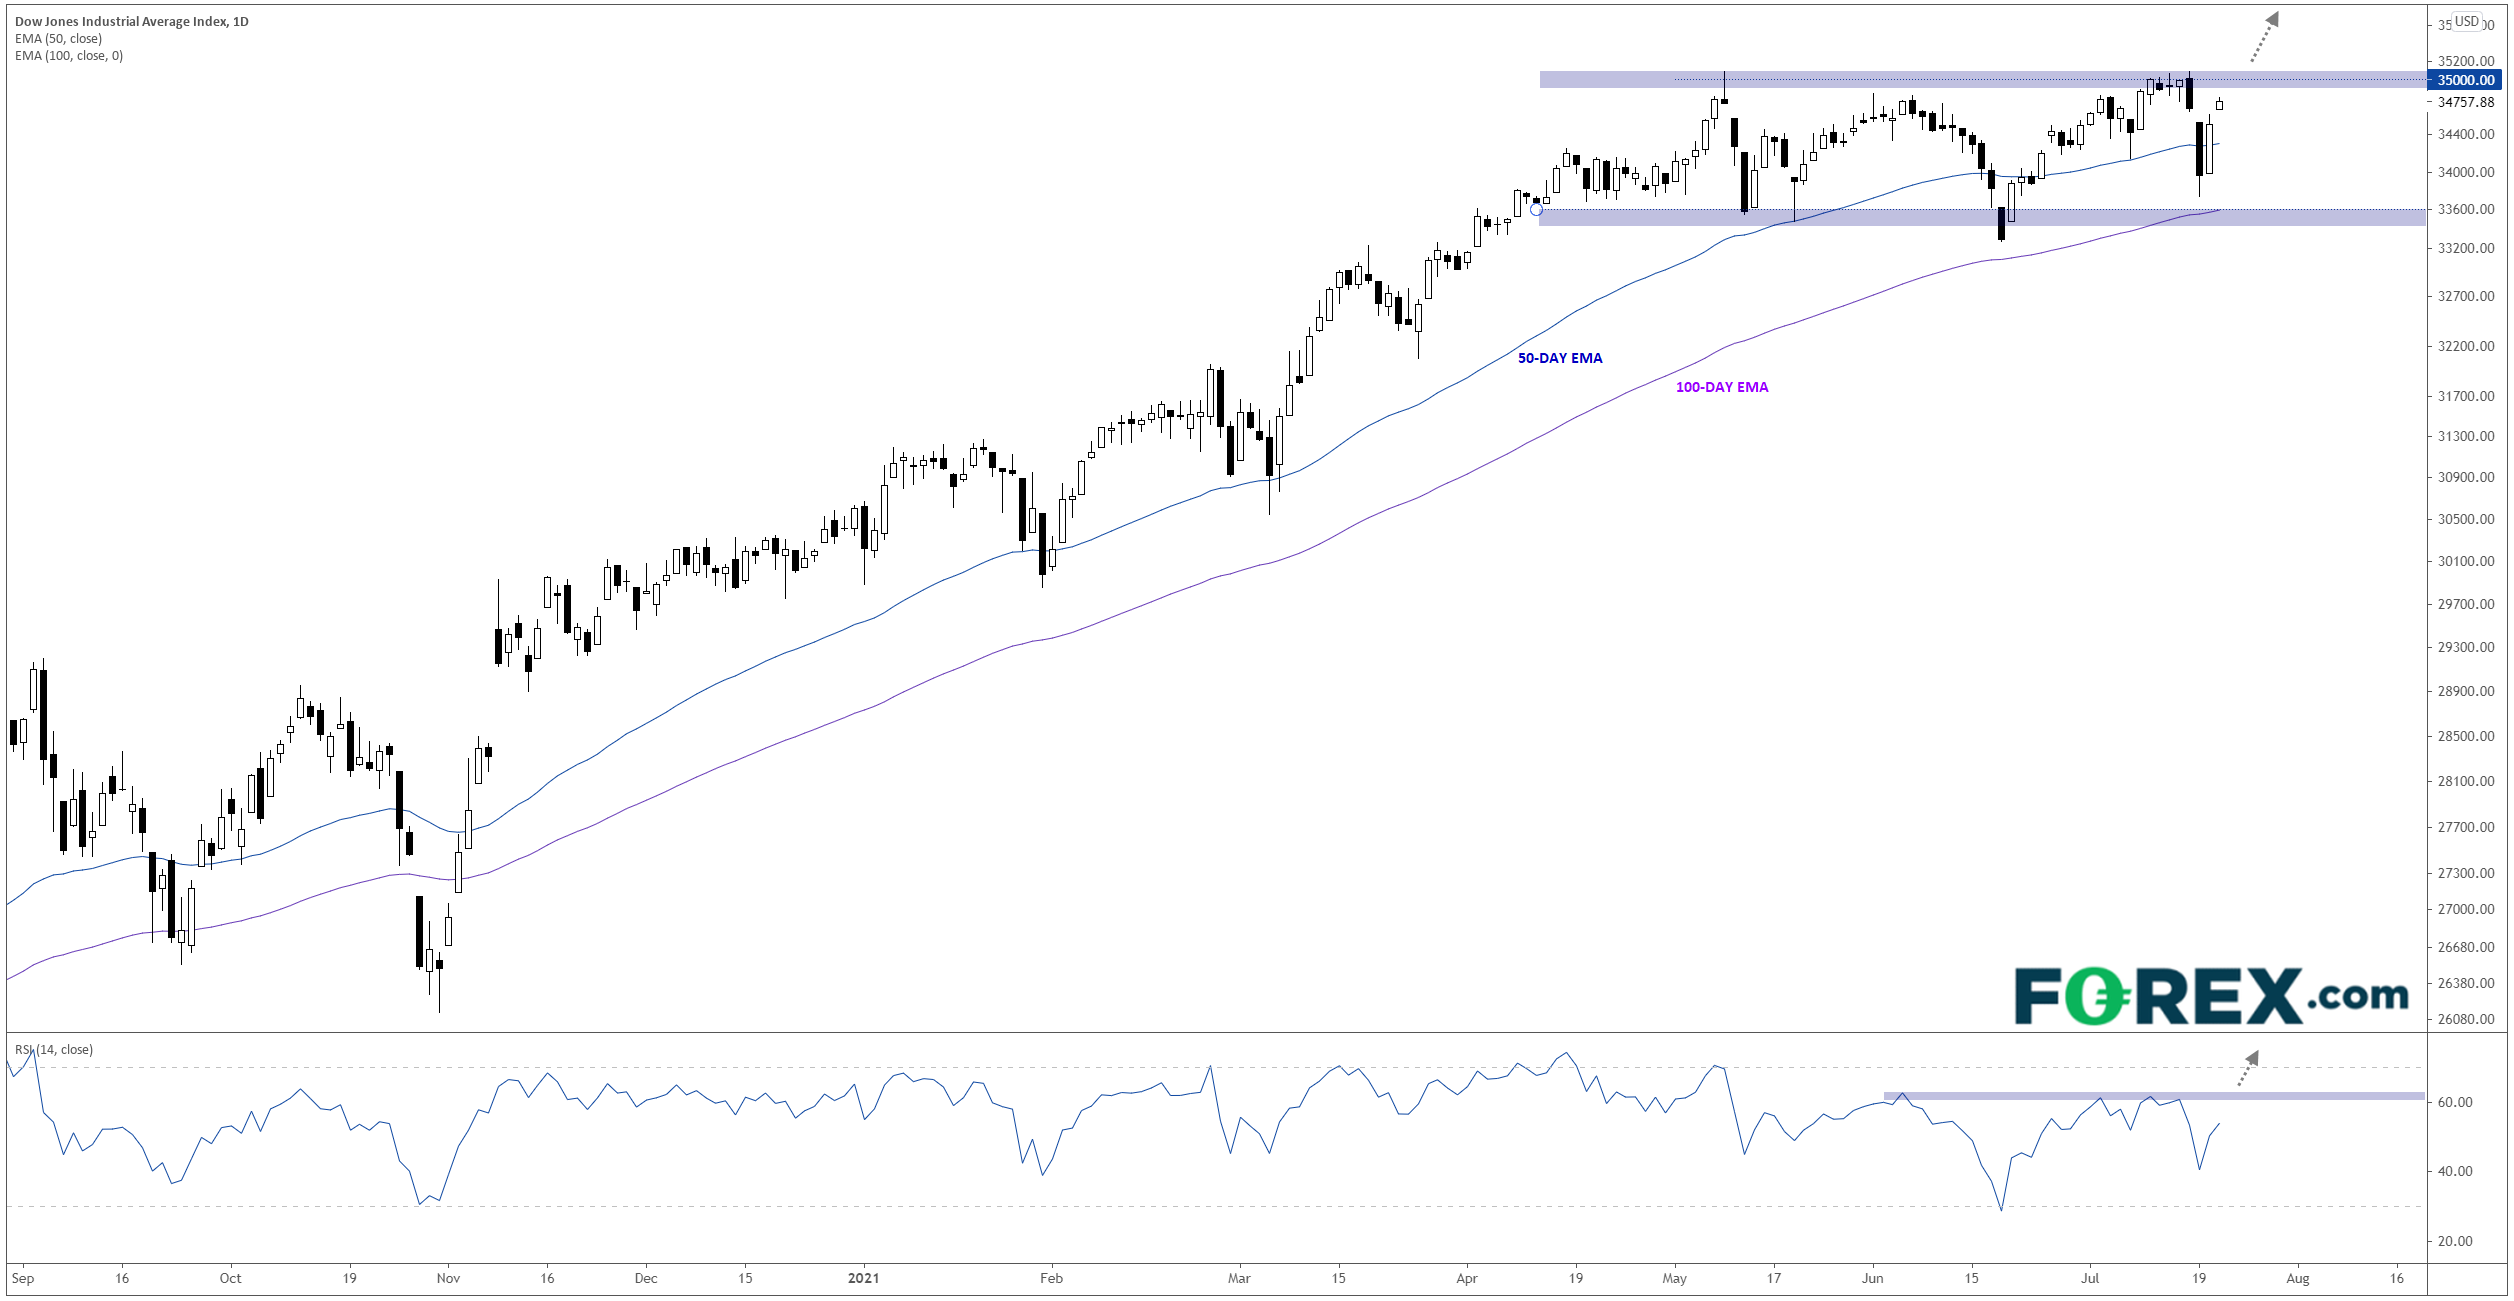 DJIA Index Daily Chart